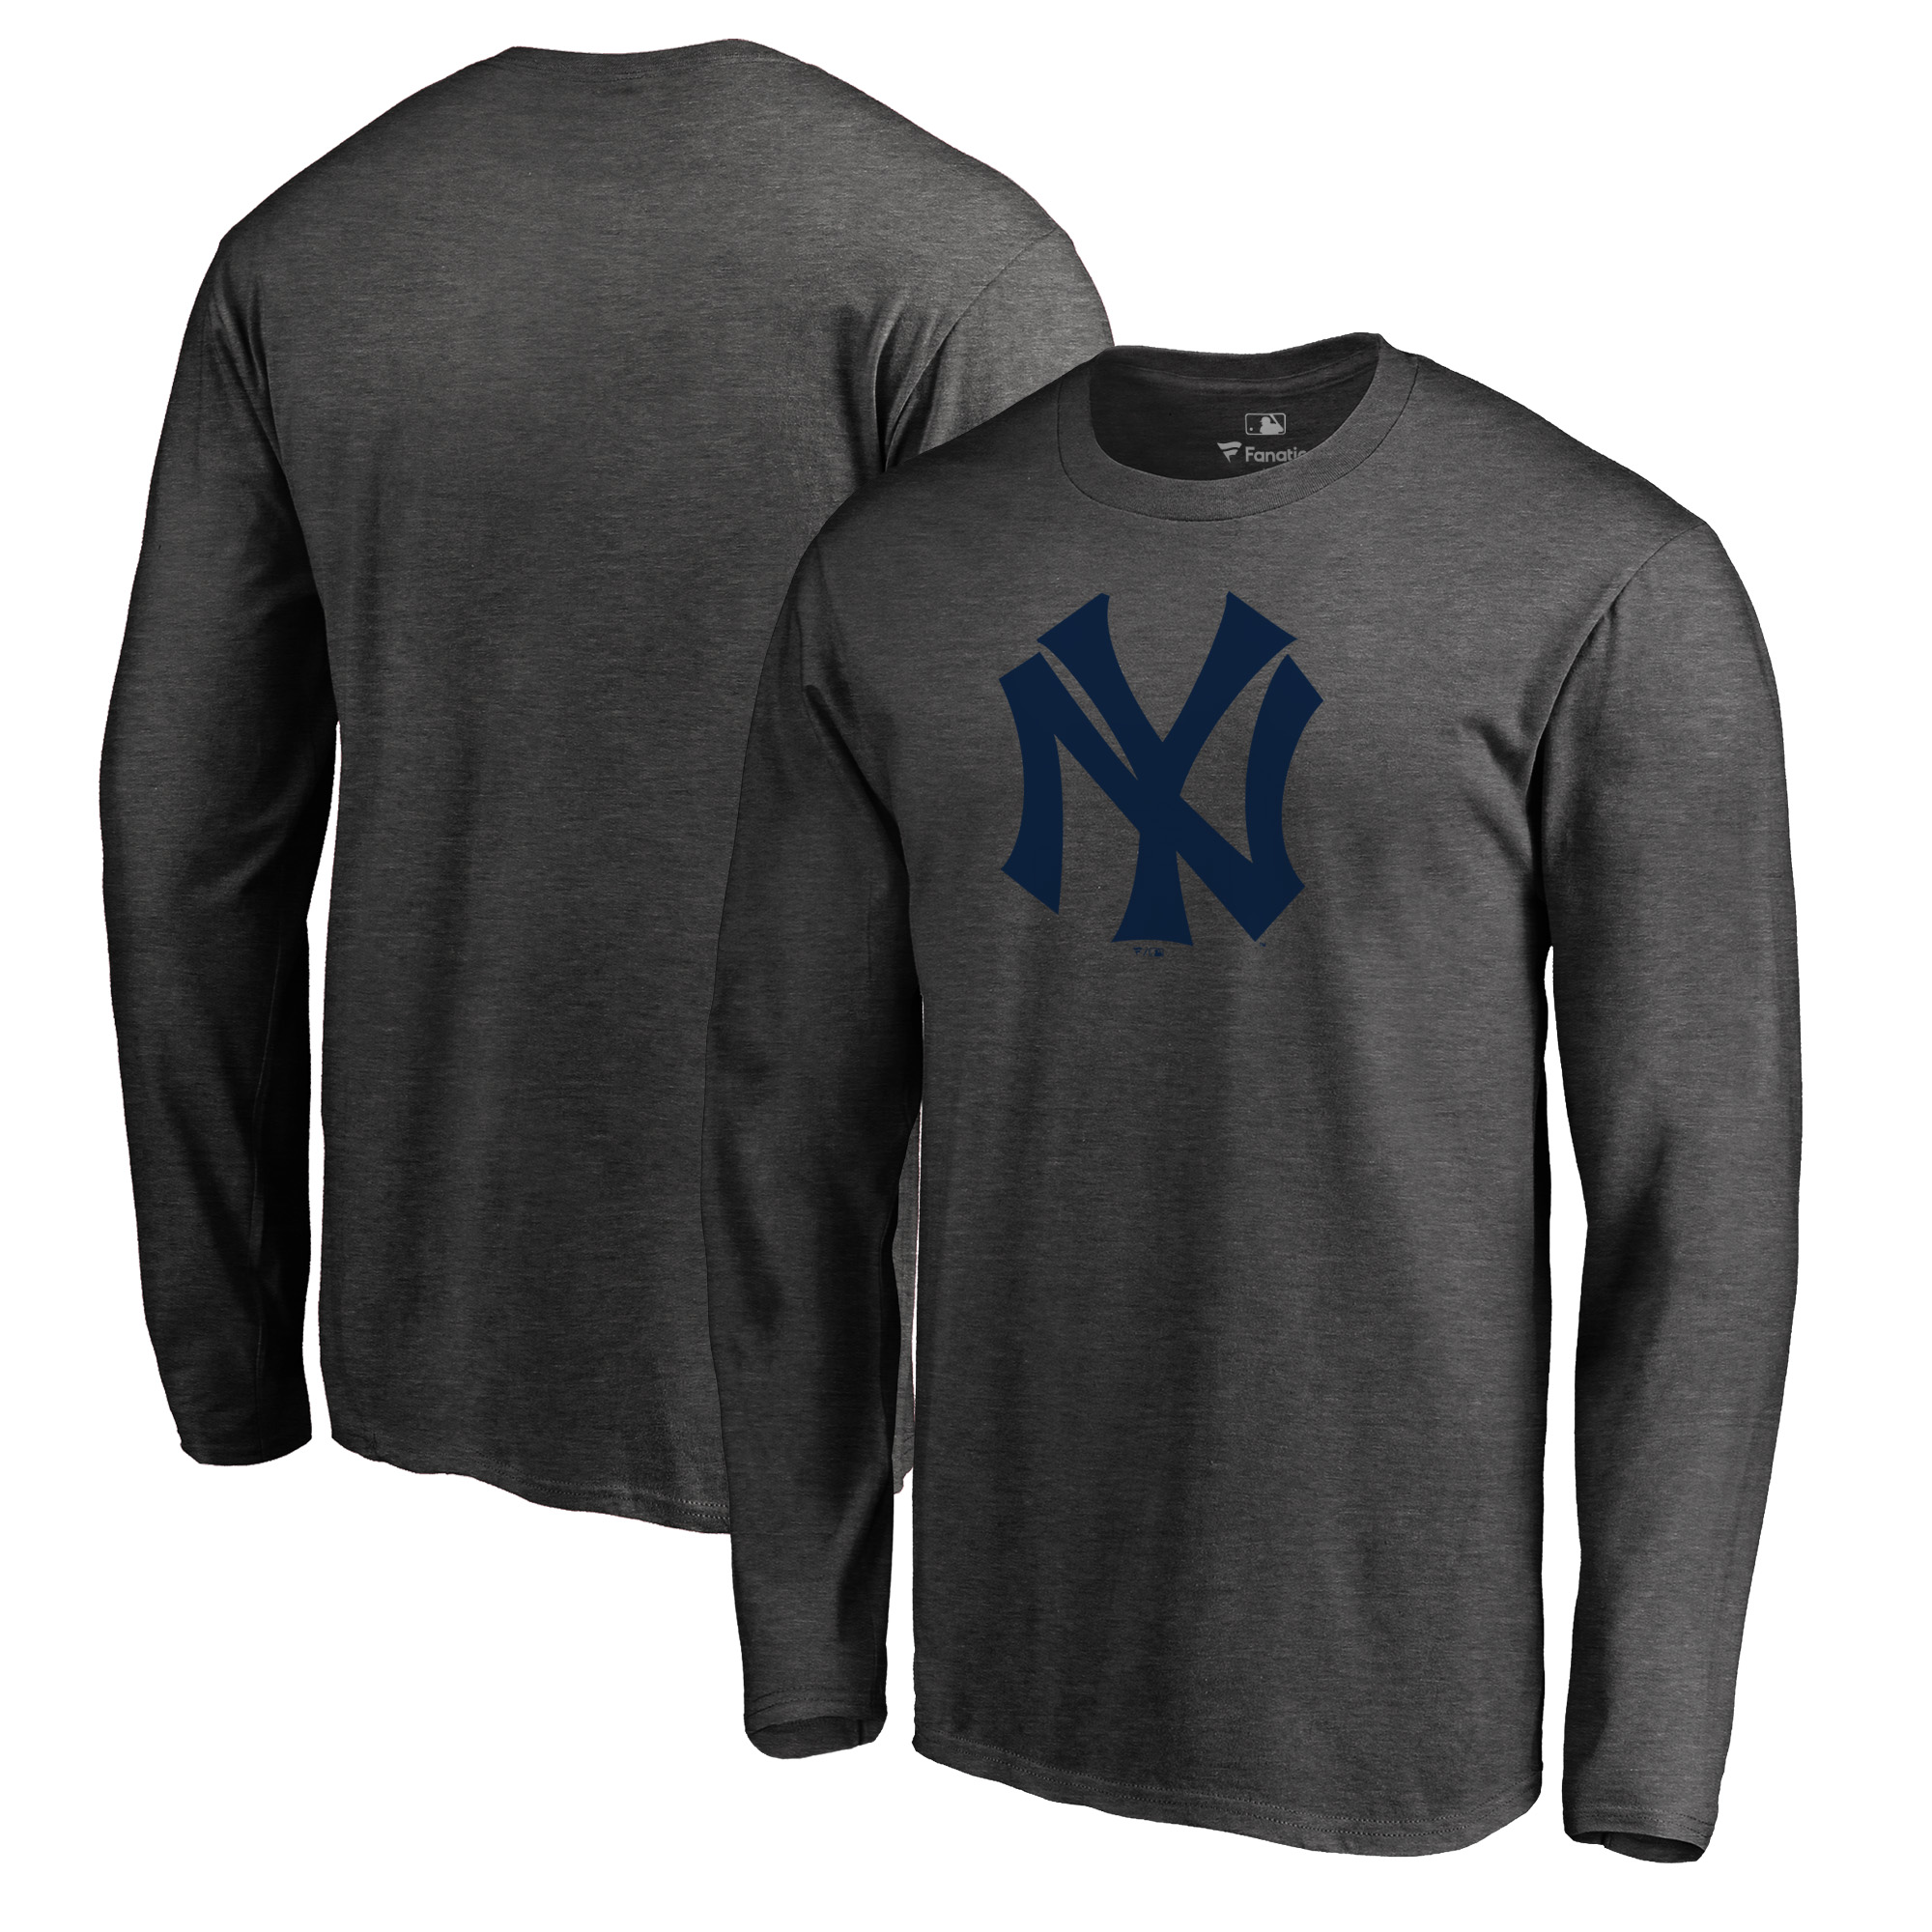 New York Yankees Fanatics Branded Cooperstown Collection Huntington Long Sleeve T-Shirt - Heathered Gray